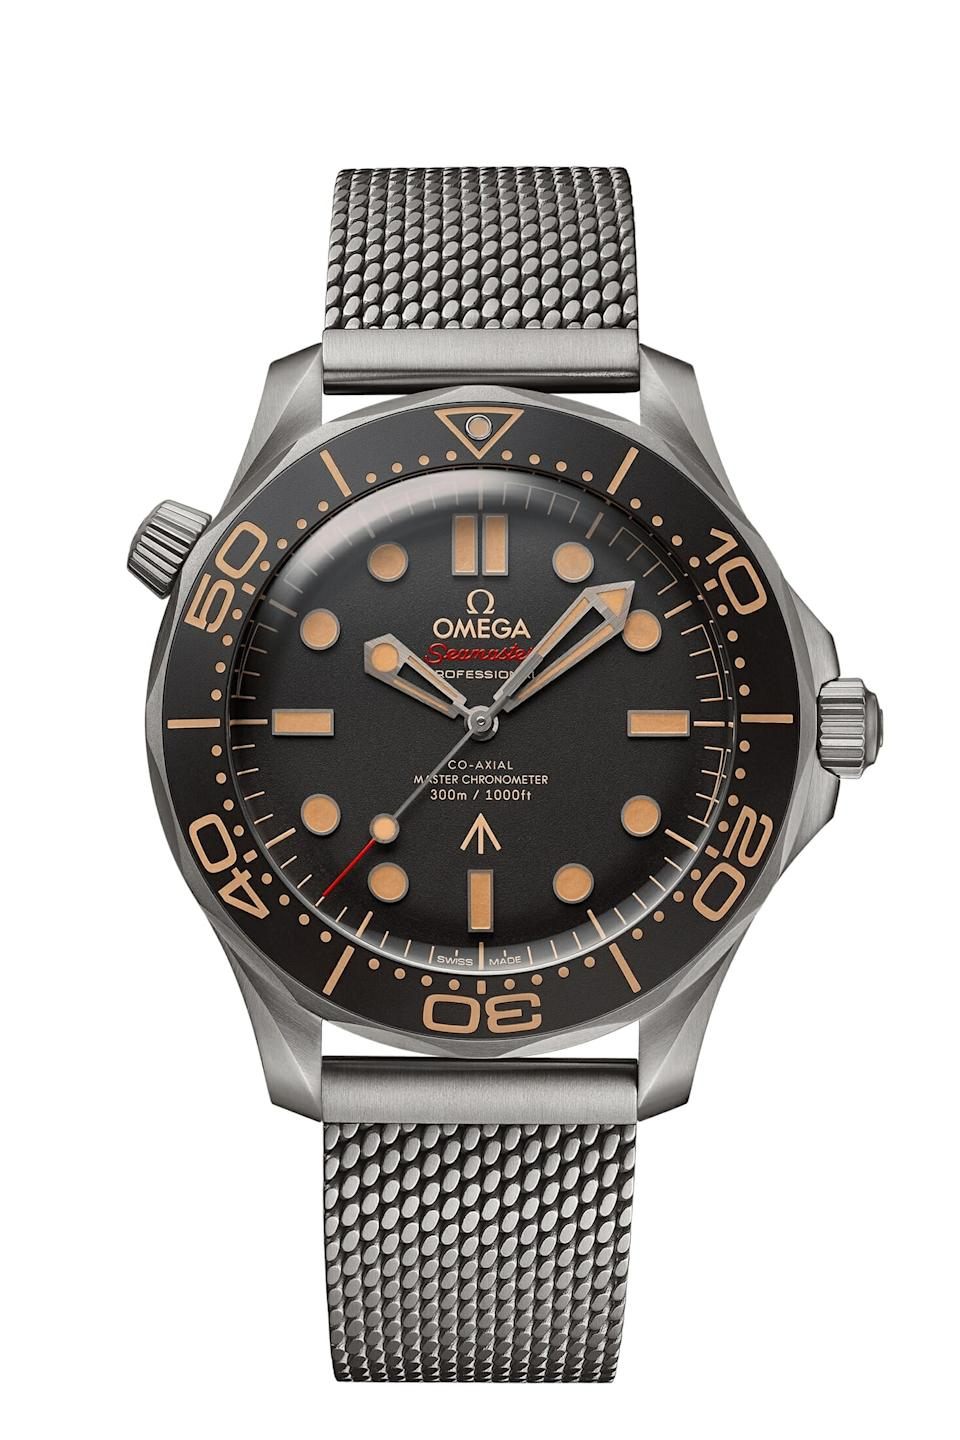 omega-seamaster-diver-300m-co-axial-master-chronometer-42-mm-21090422001001-1-product-zoom